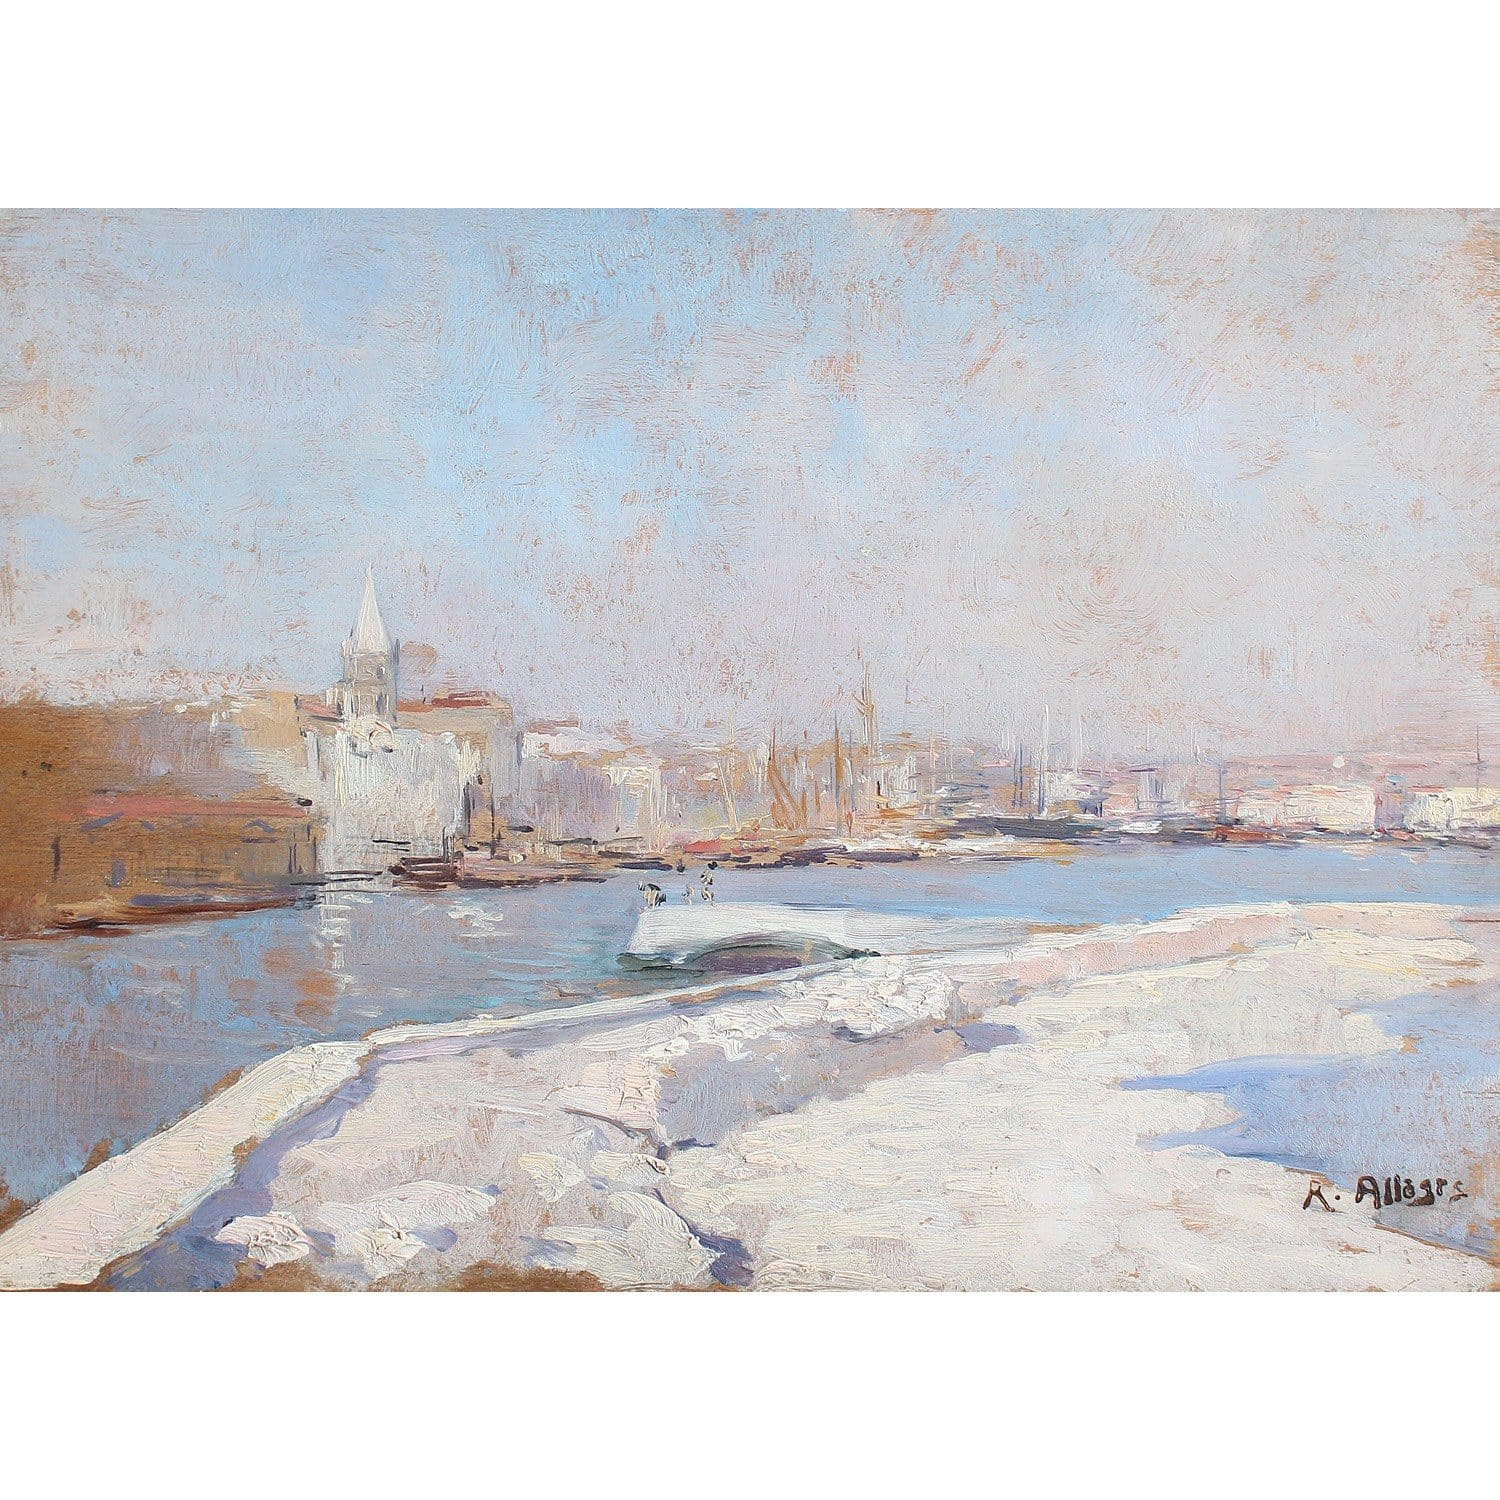 Raymond Allegre, Entrée Du Port De Marseille - Original Framed Painting - Antique Art - Brave Fine Art